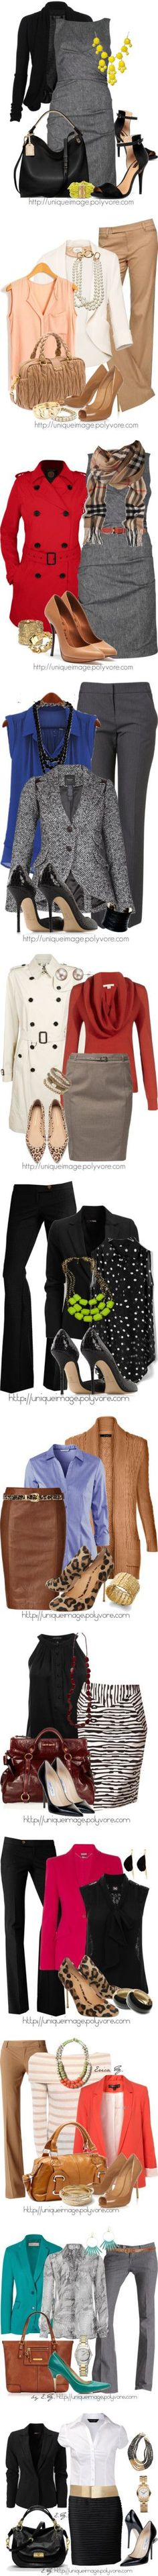 """Work Attire"" by uniqueimage on Polyvore  I like them all except the animal print ones. Too wild for me ;)"